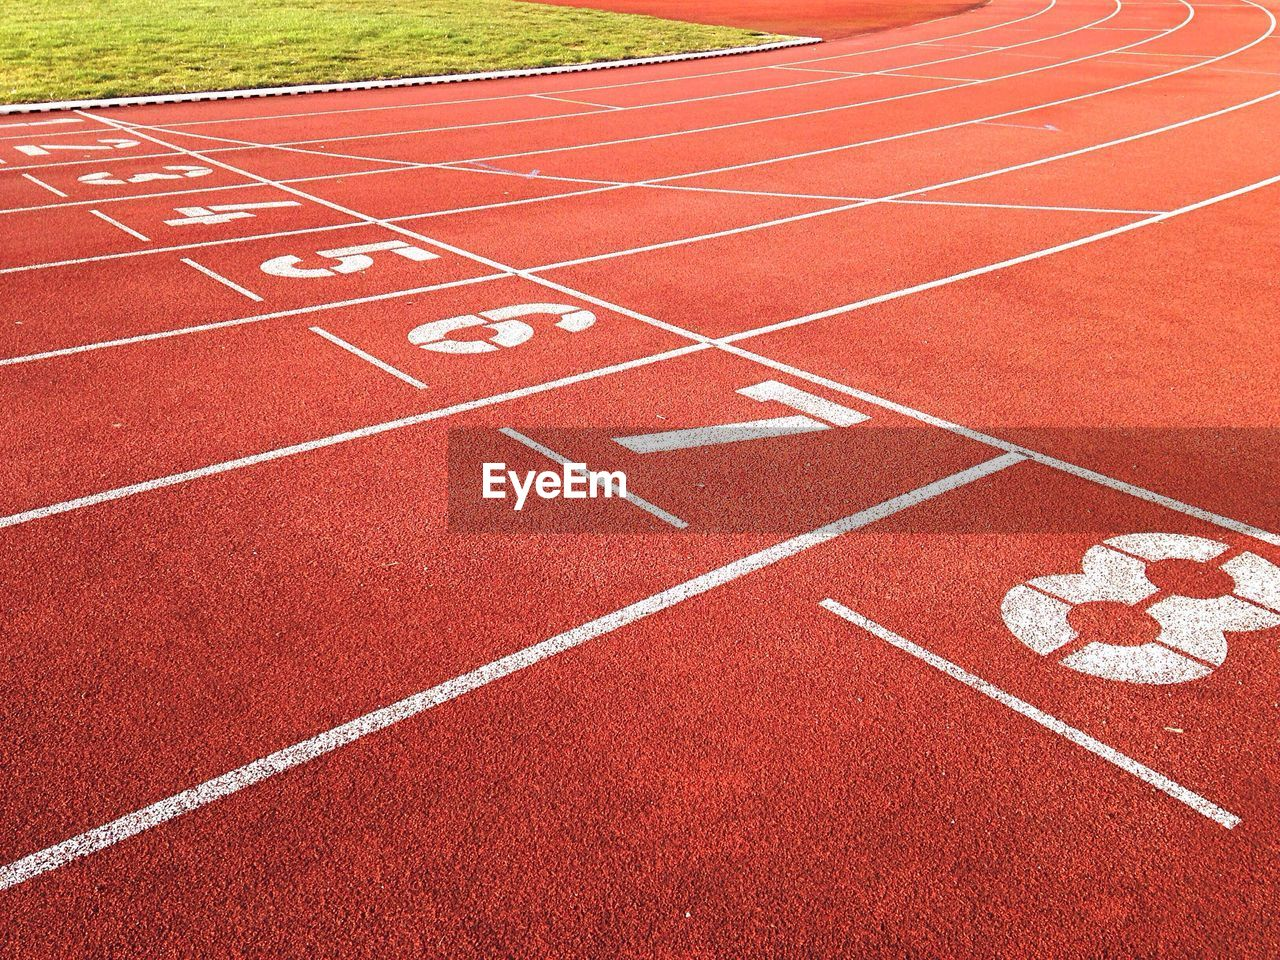 running track, number, track and field, sports track, sports race, sport, competition, striped, day, outdoors, starting line, red, no people, track and field stadium, stadium, competitive sport, track and field event, finish line